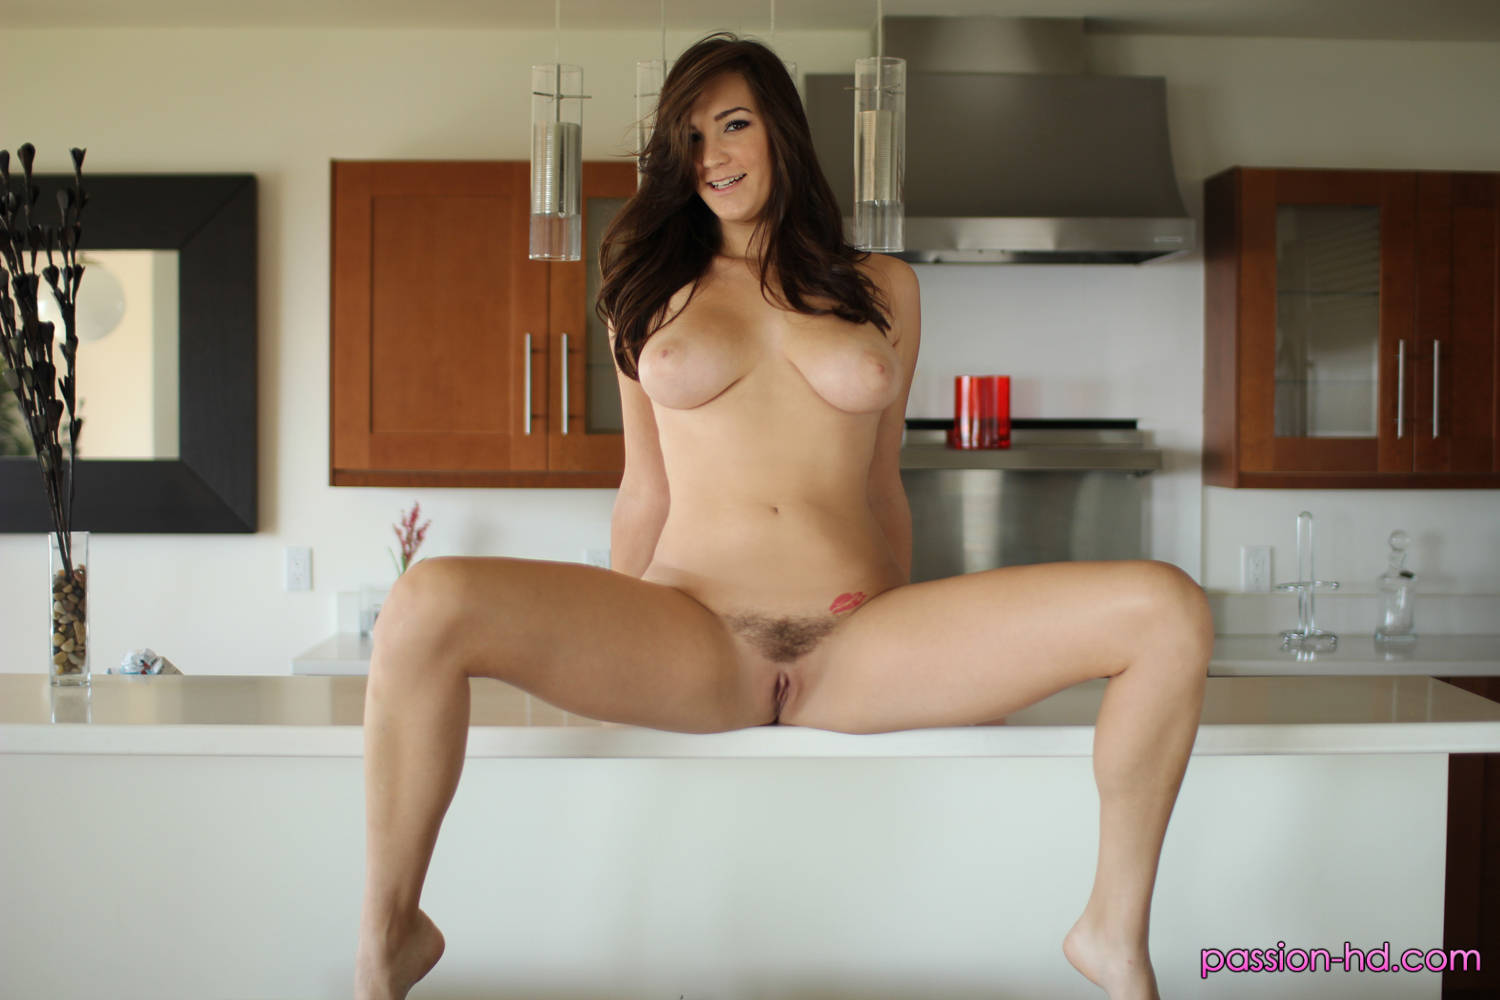 Passion Hd Holly Michaels in Best of Both Worlds Part 2 1